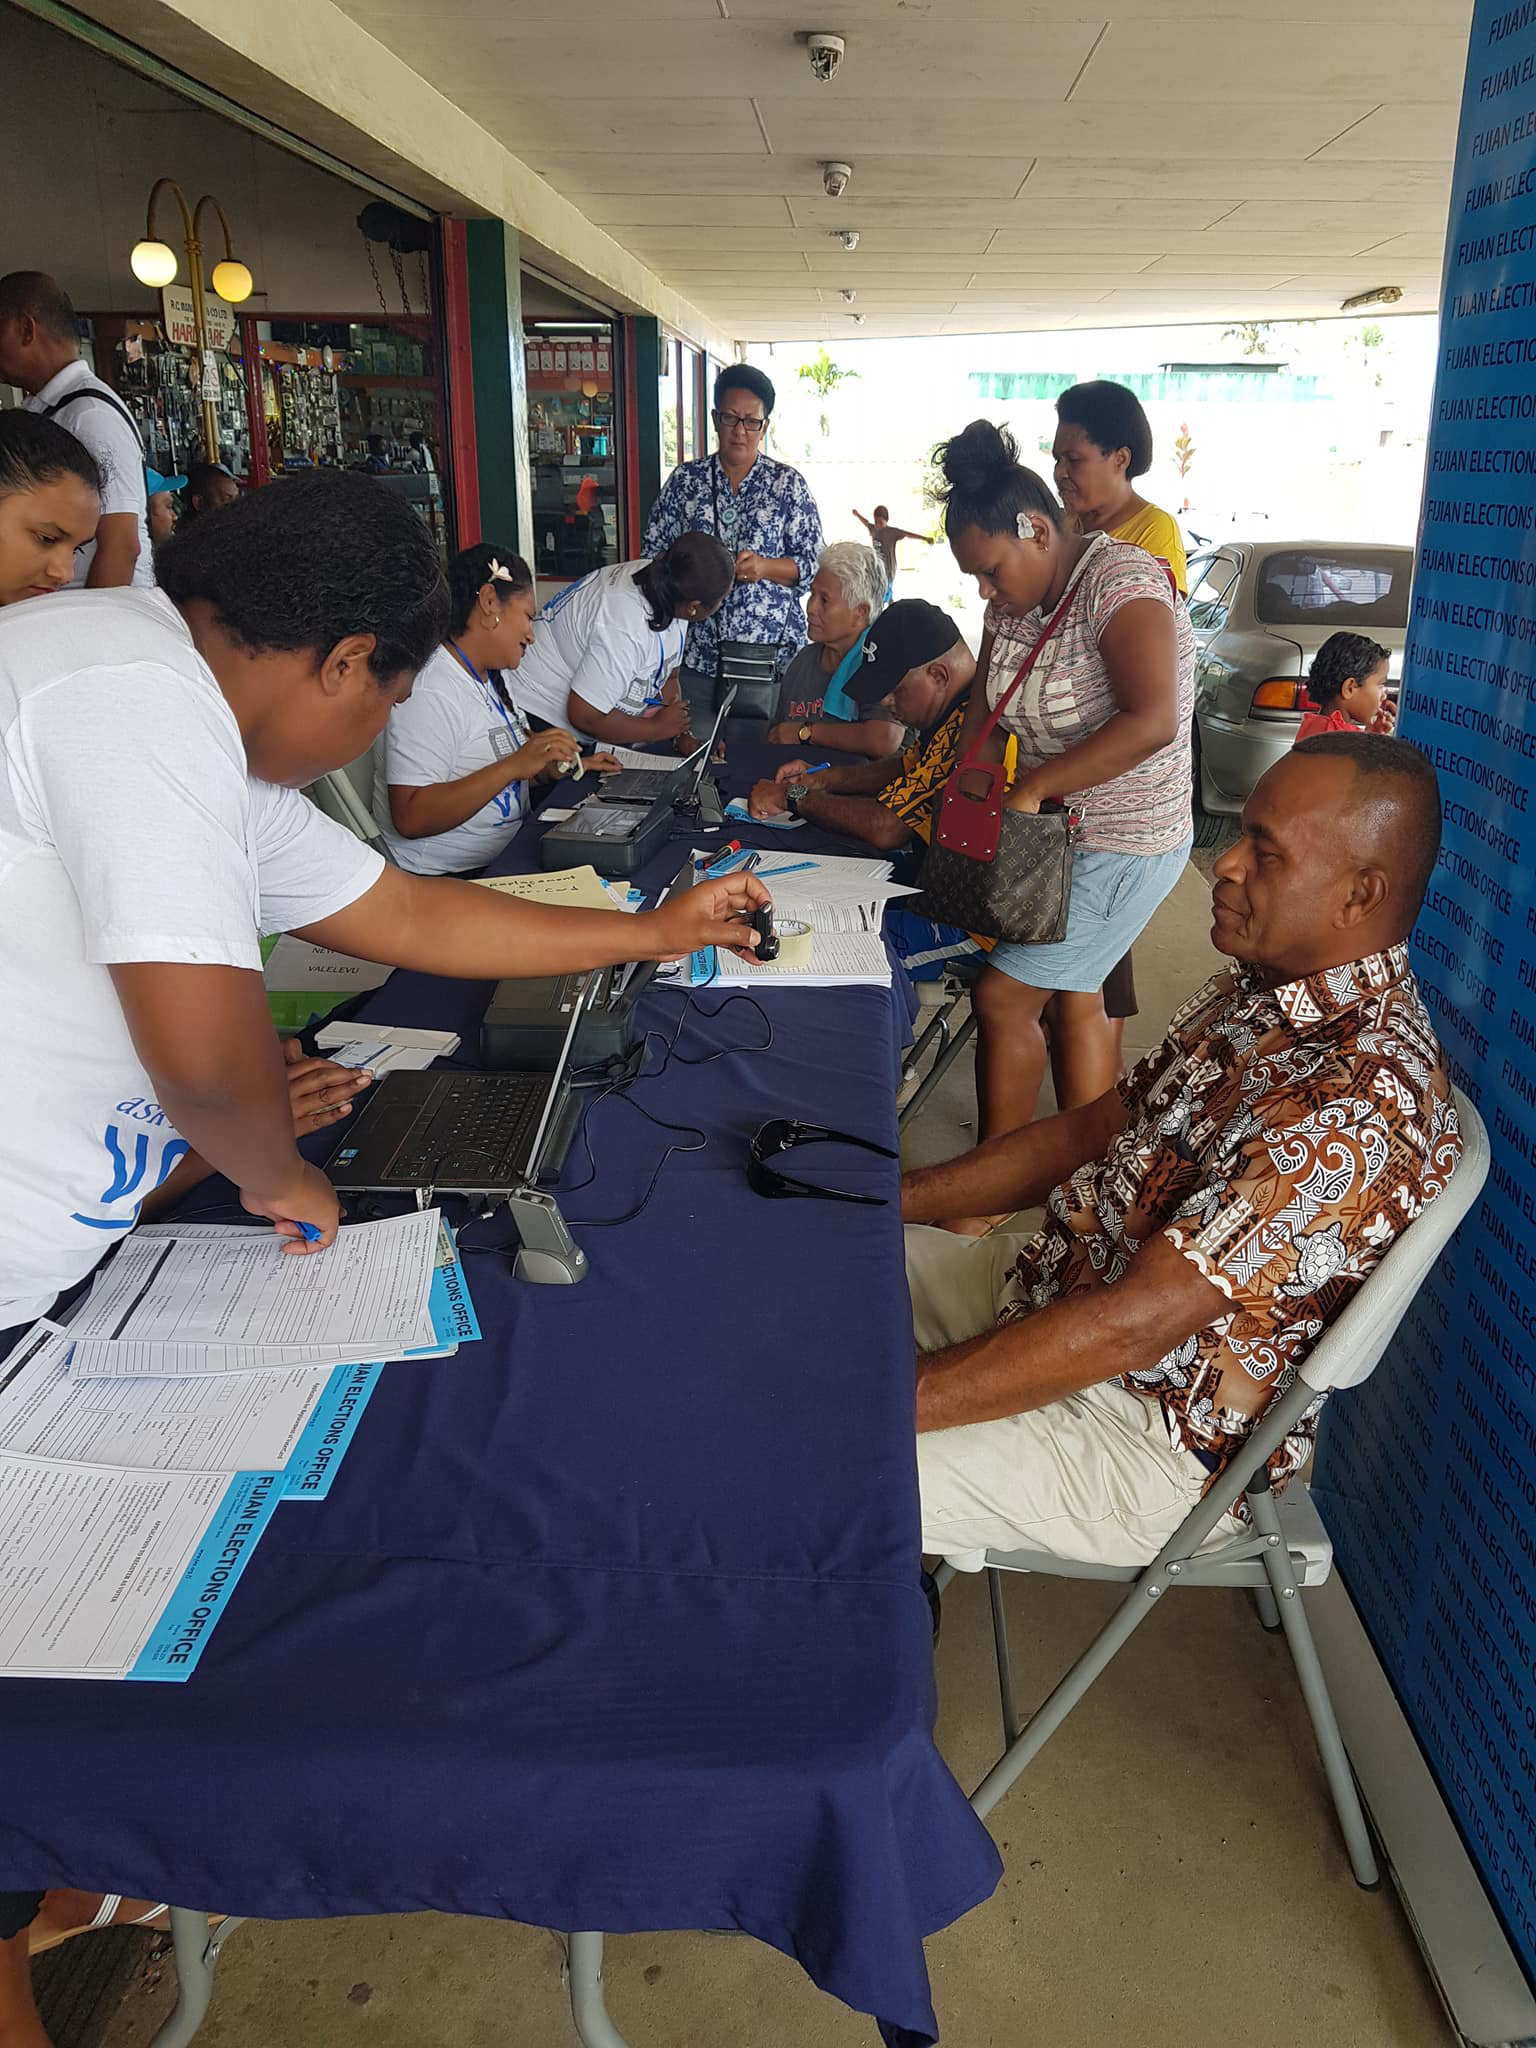 Fijian Elections Office officials assisted members of the public during the face-to-face voter awareness in Valelevu on September 22, 2018. Photo: Fijian Elections Office